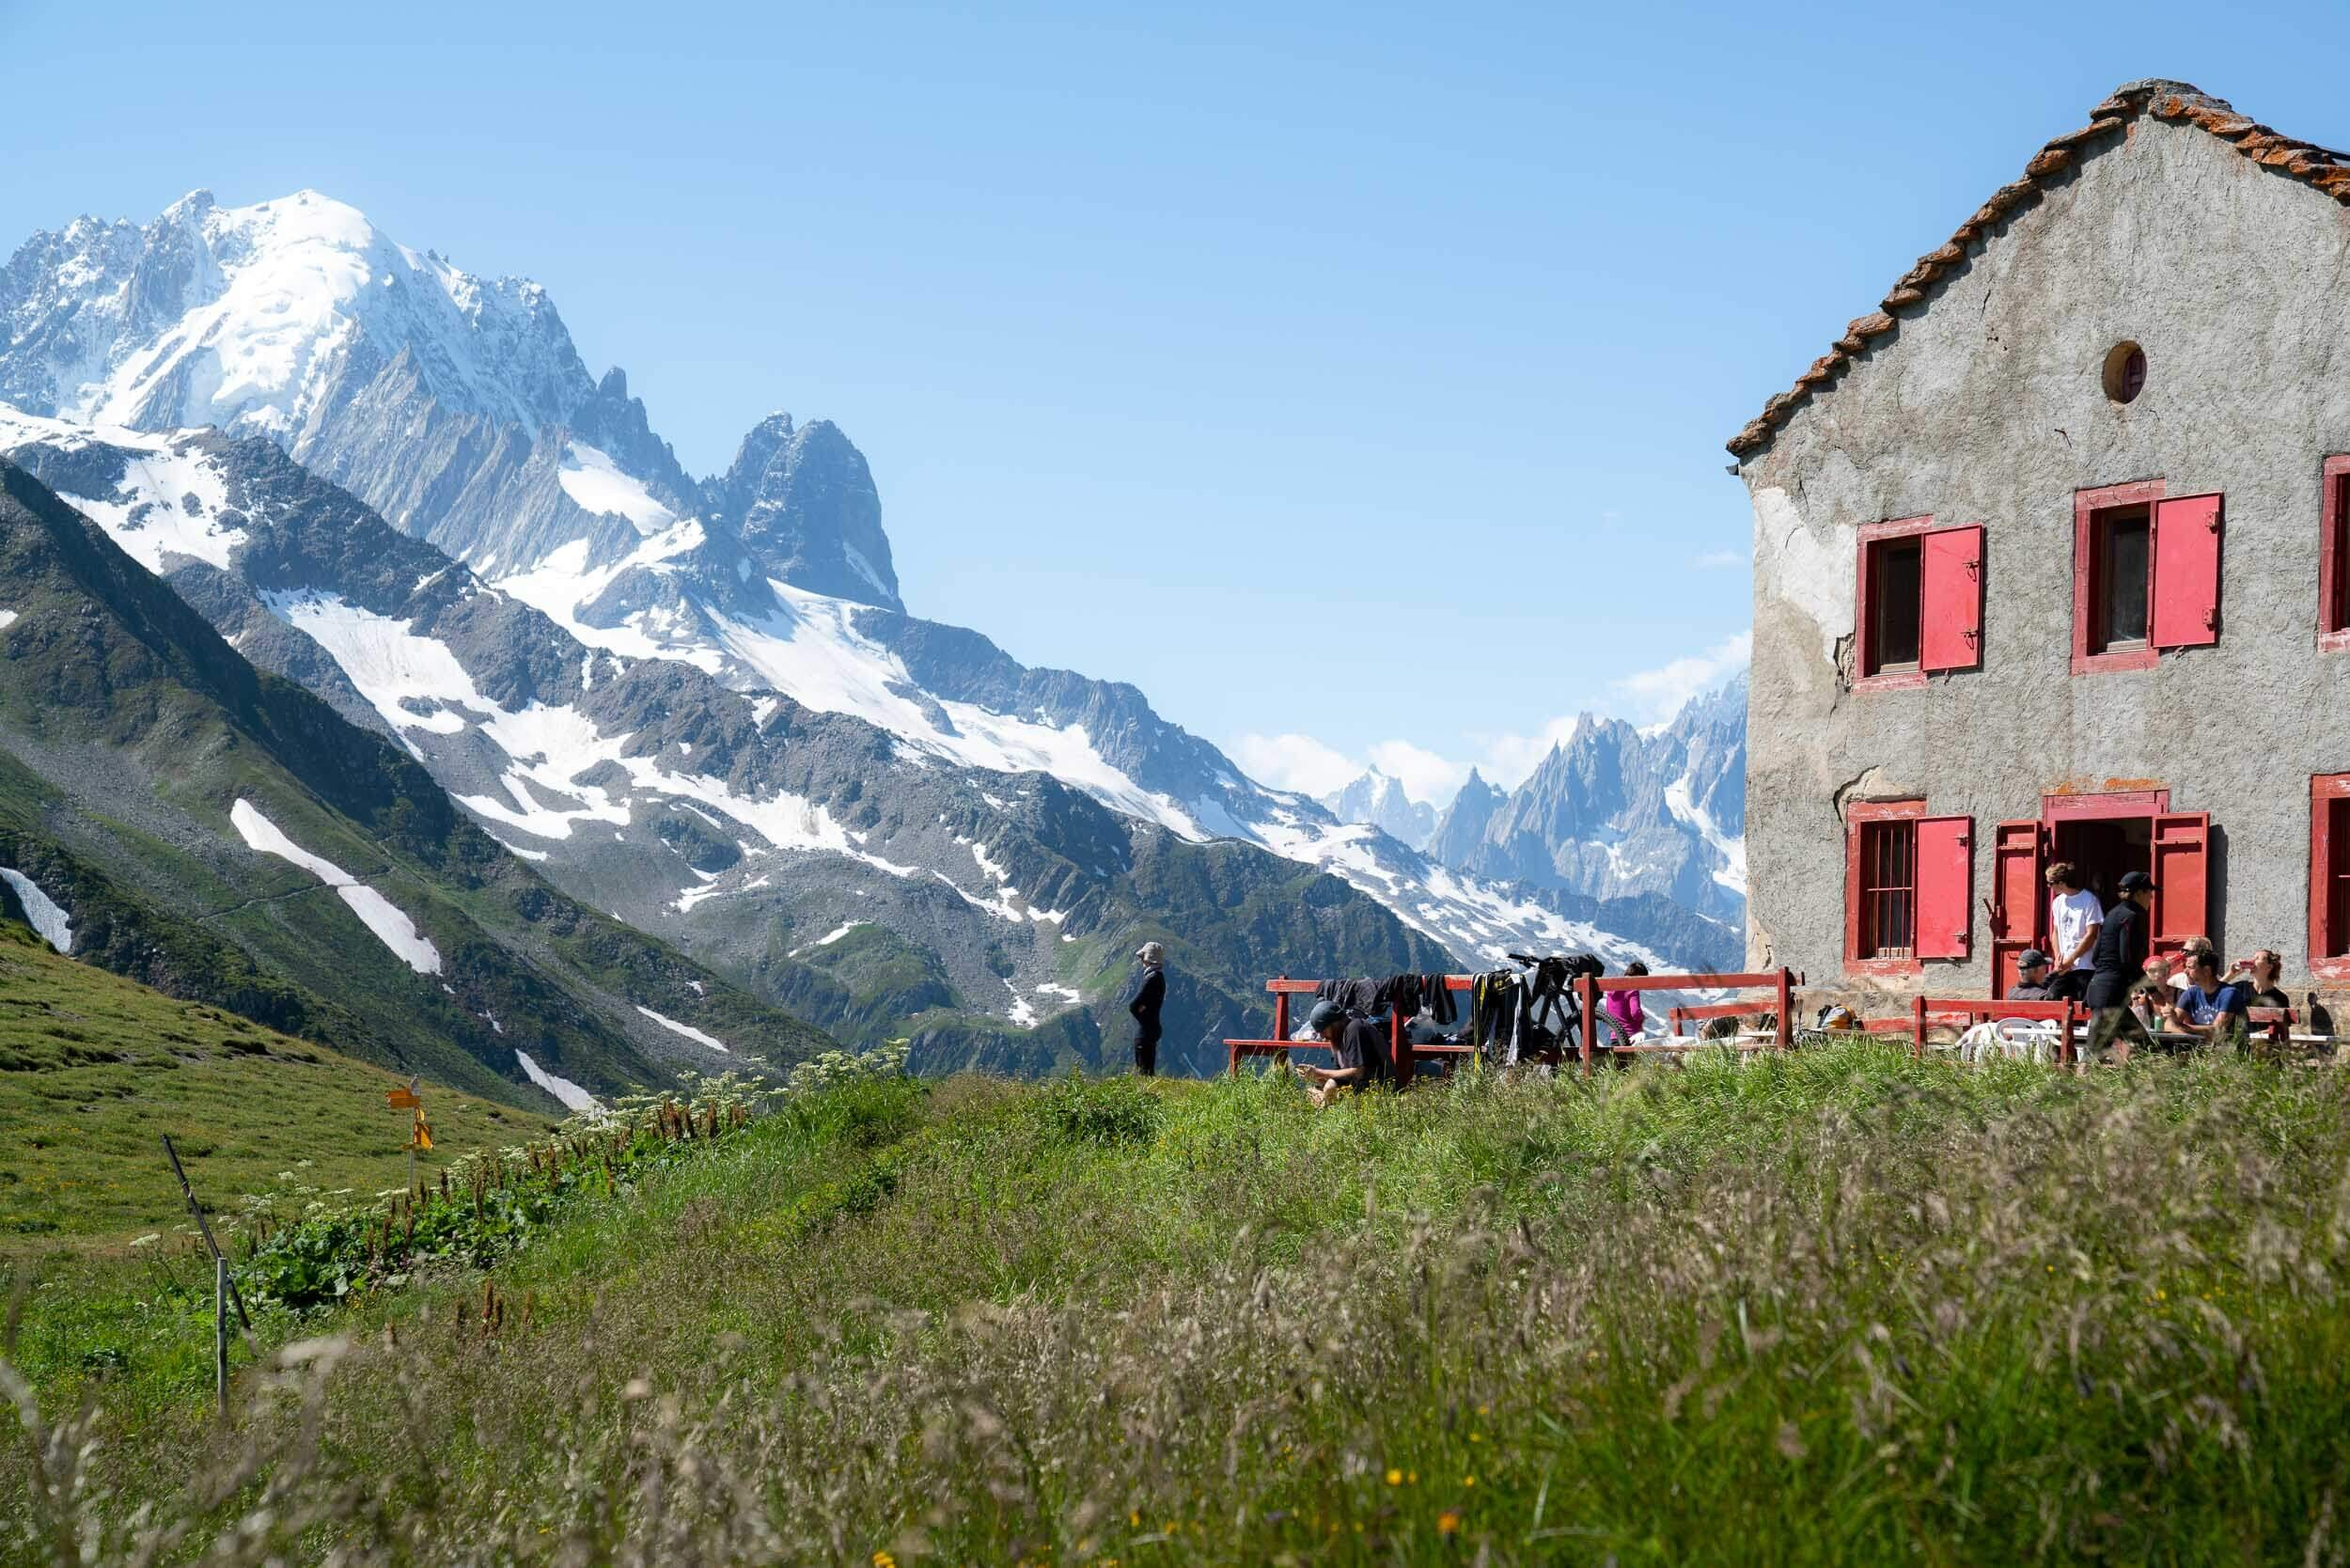 Stopping for lunch at a refugio along the Tour du Mont Blanc.